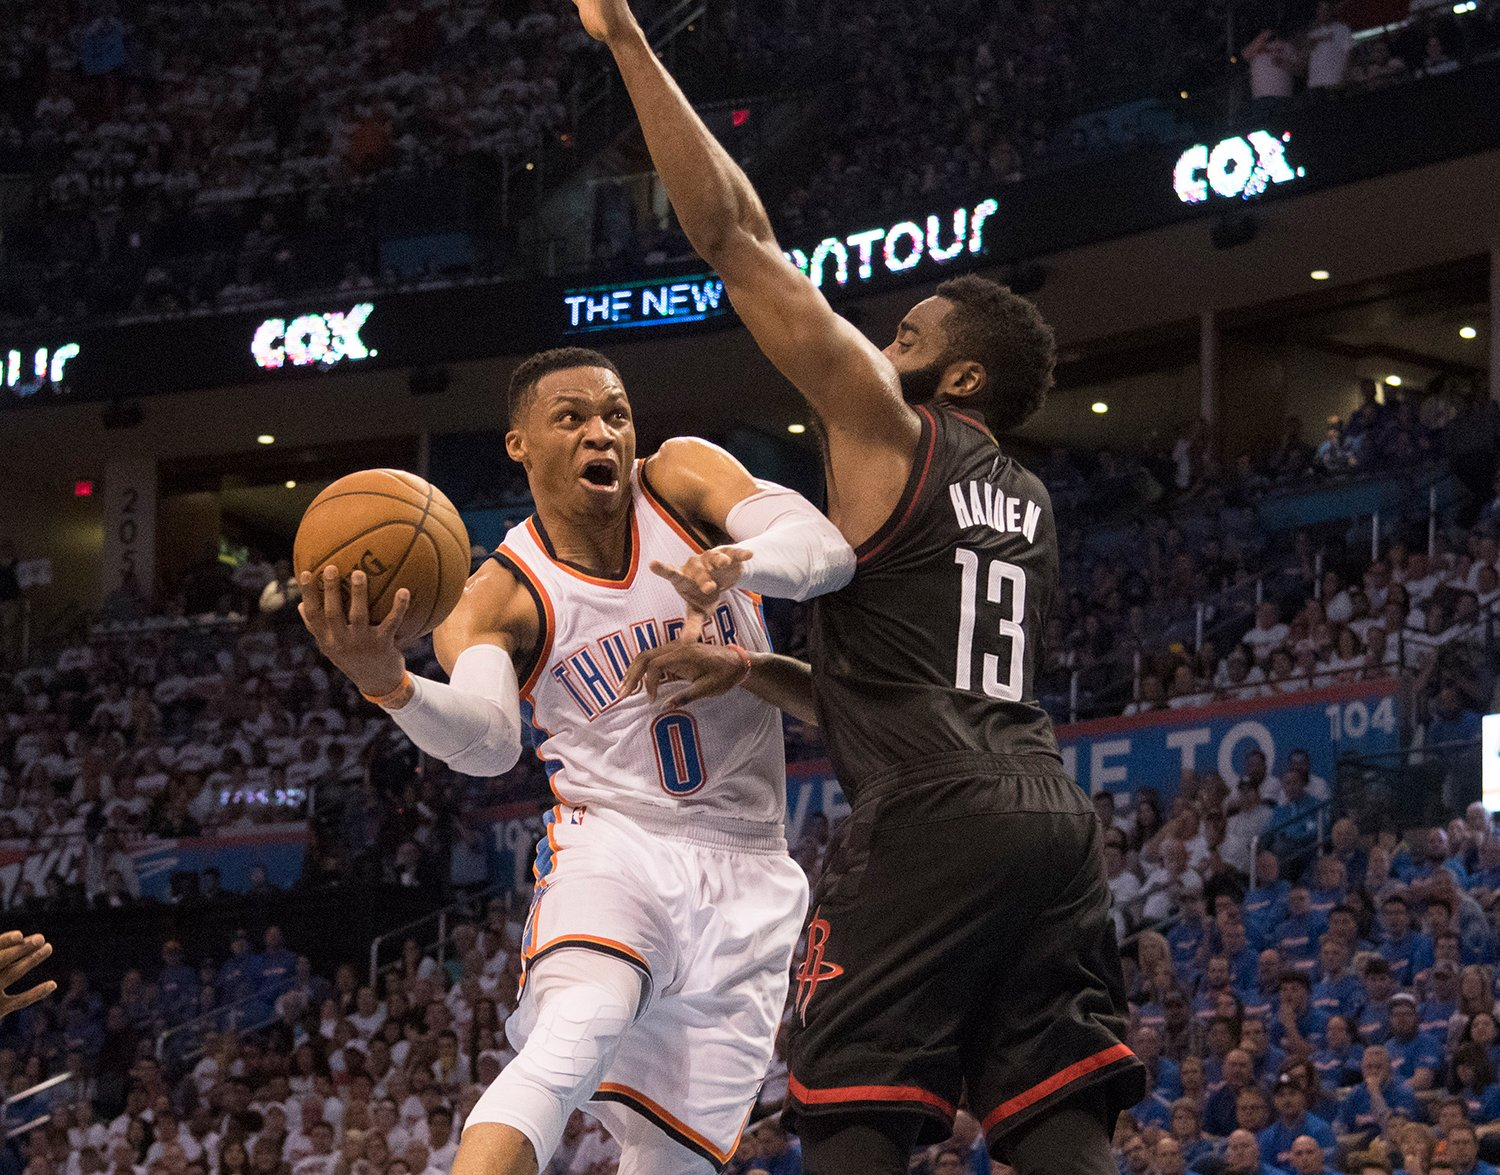 A more controlled Russell Westbrook got the better of James Harden's Rockets in Game 3. (Getty Images)